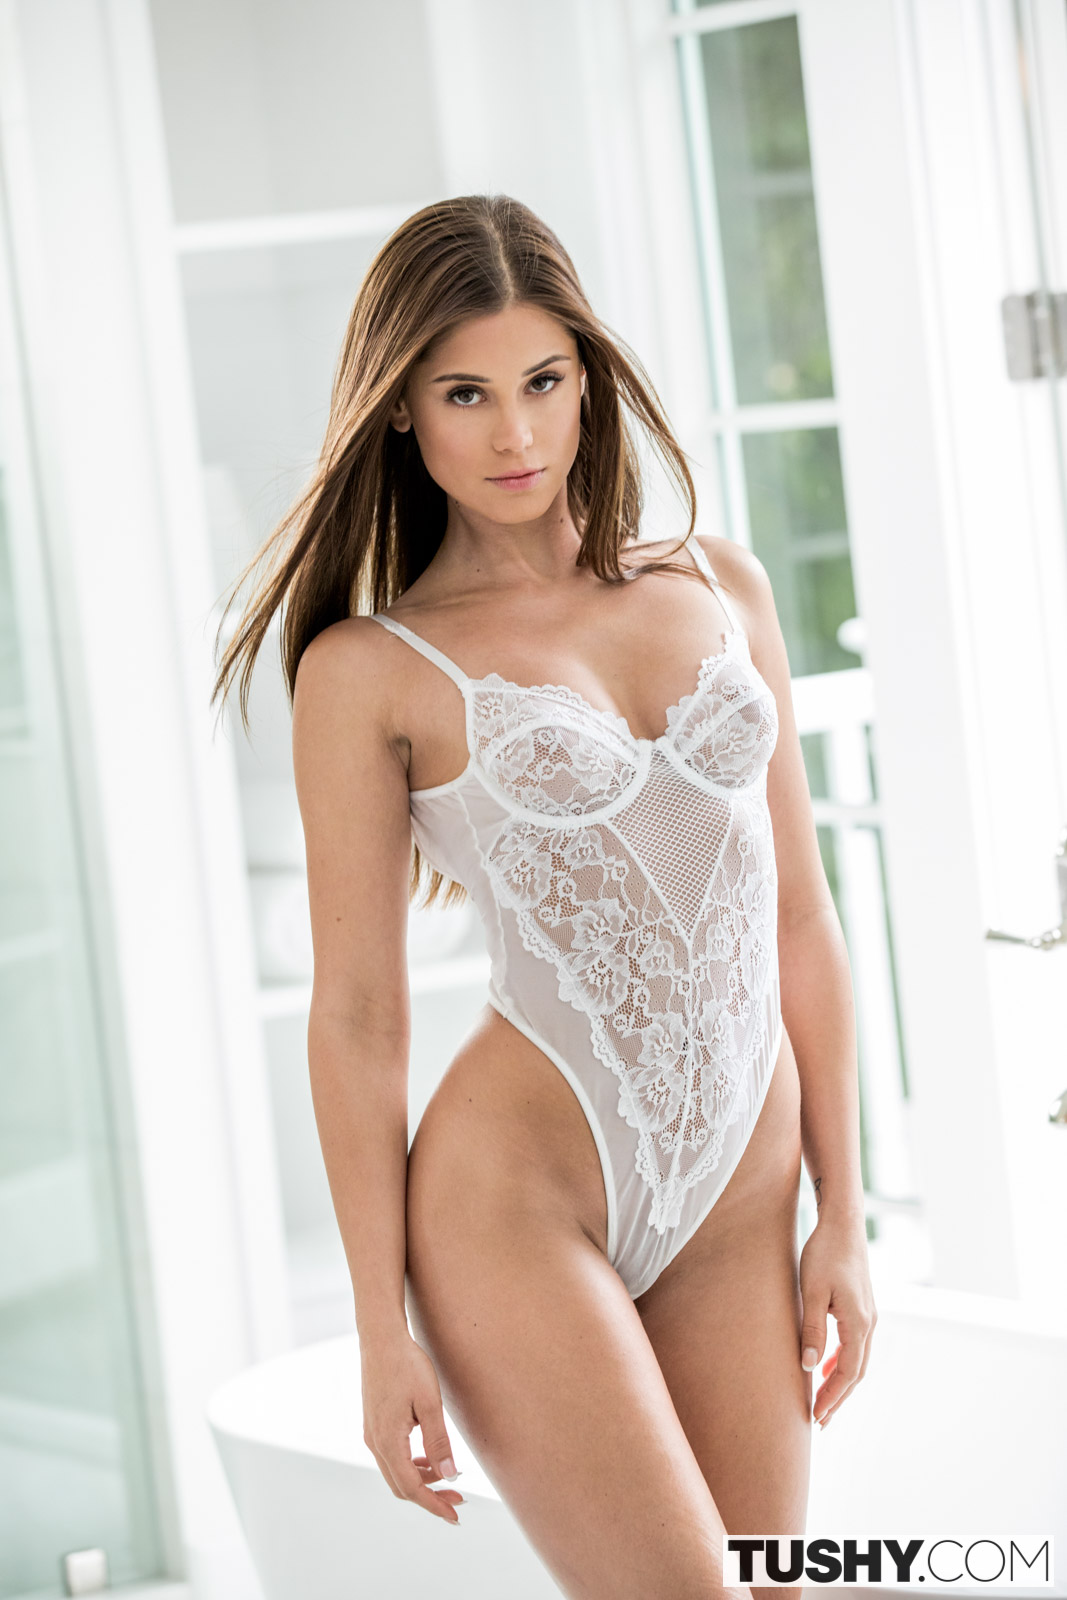 Little caprice new videos